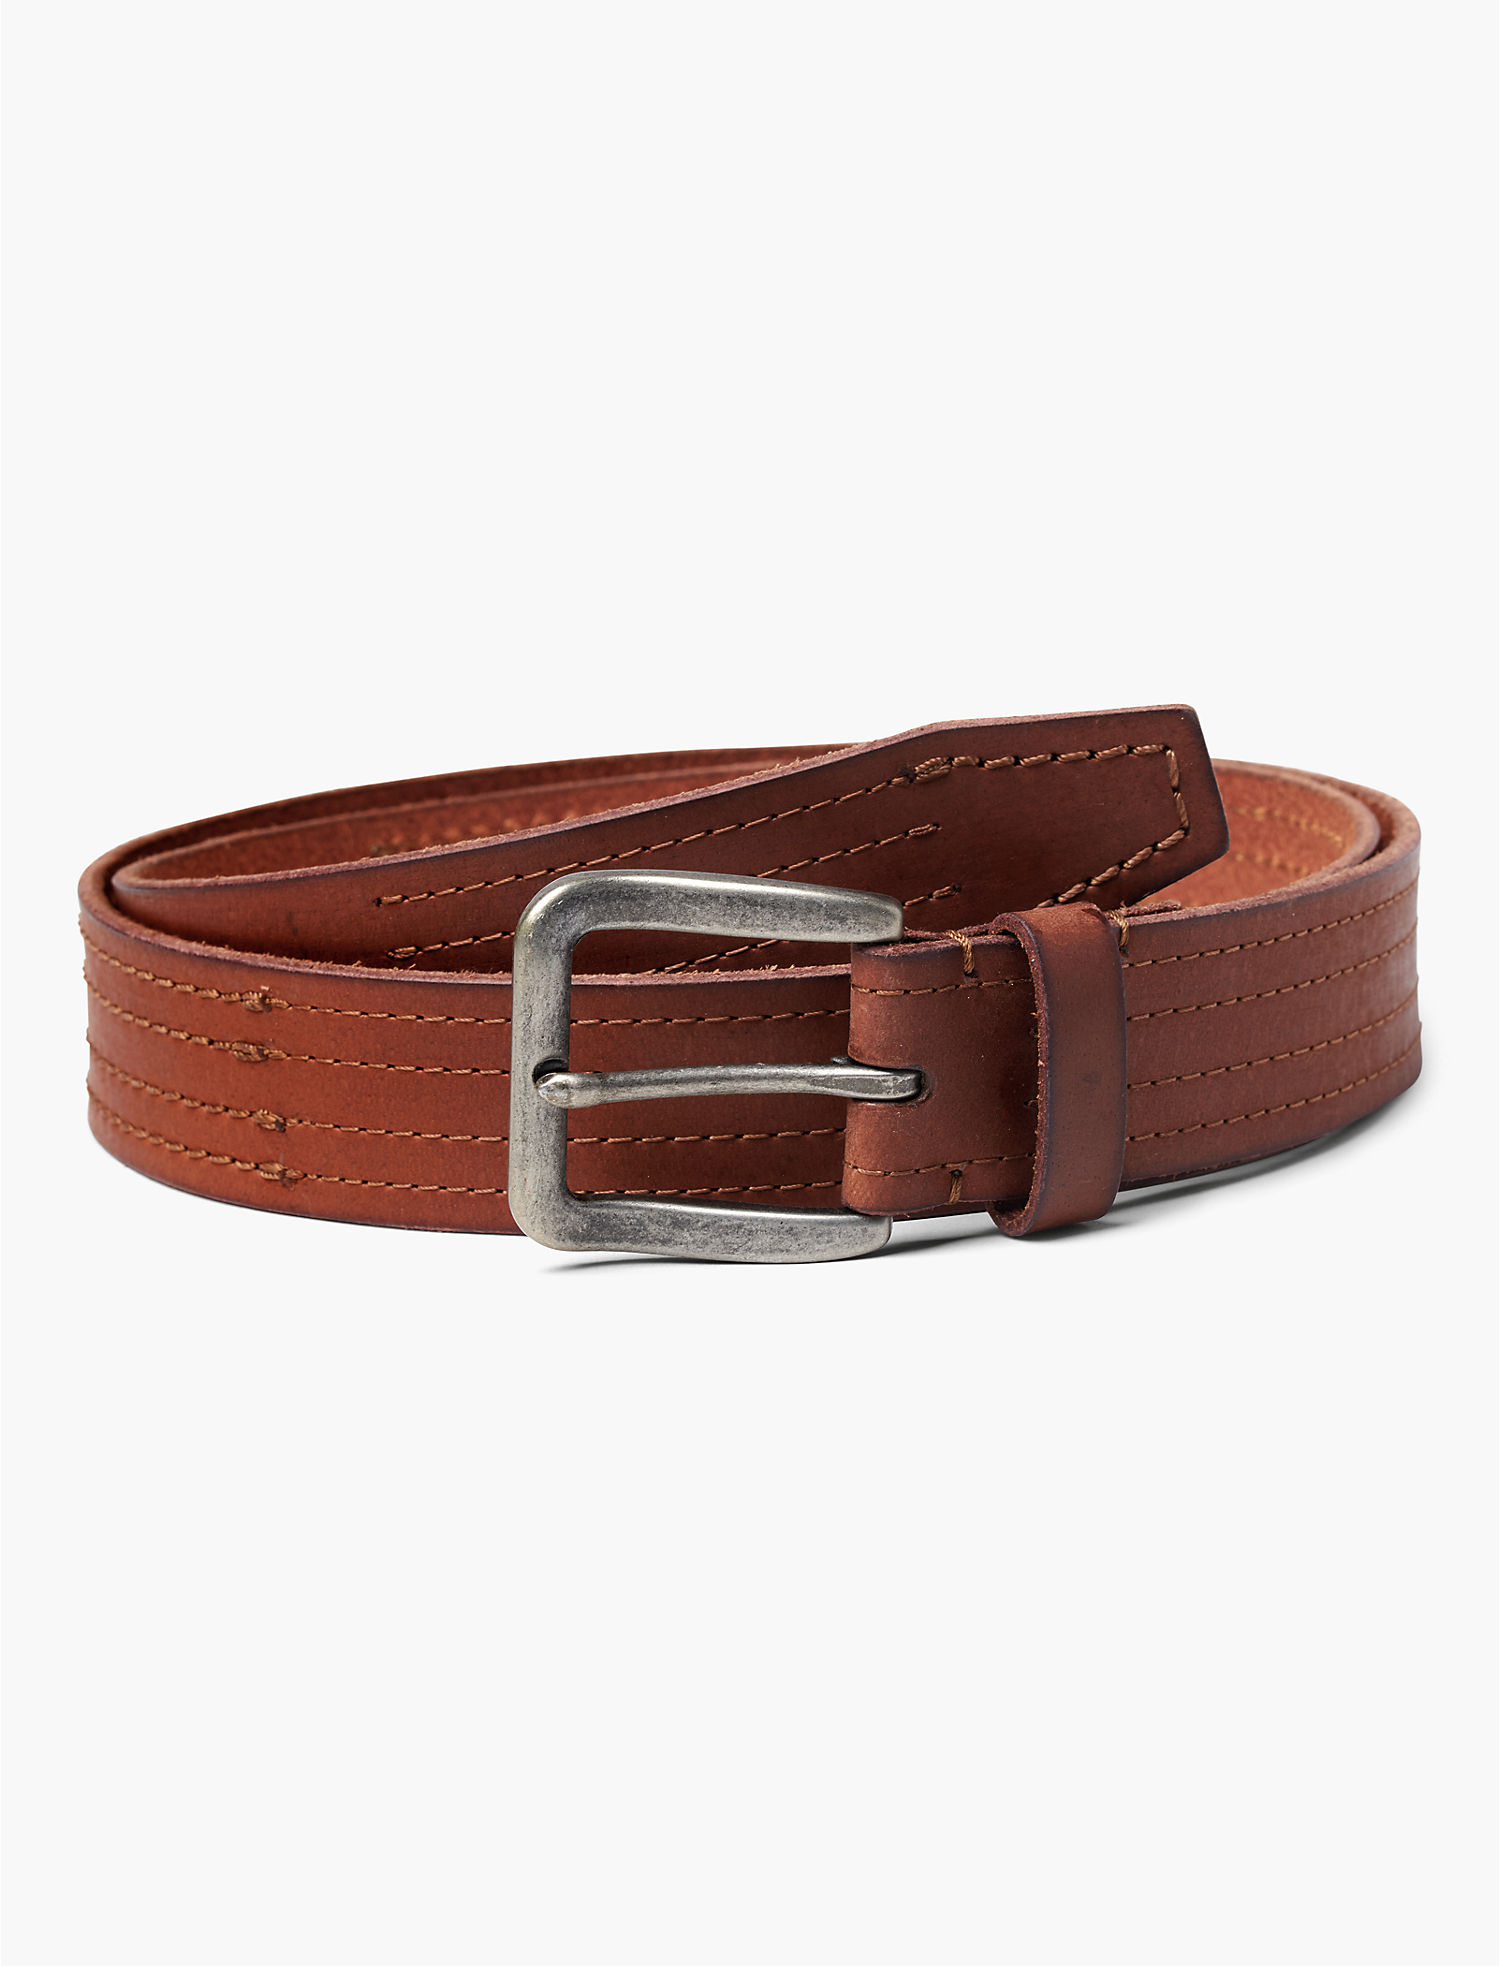 Stitched Leather Belt | Tuggl